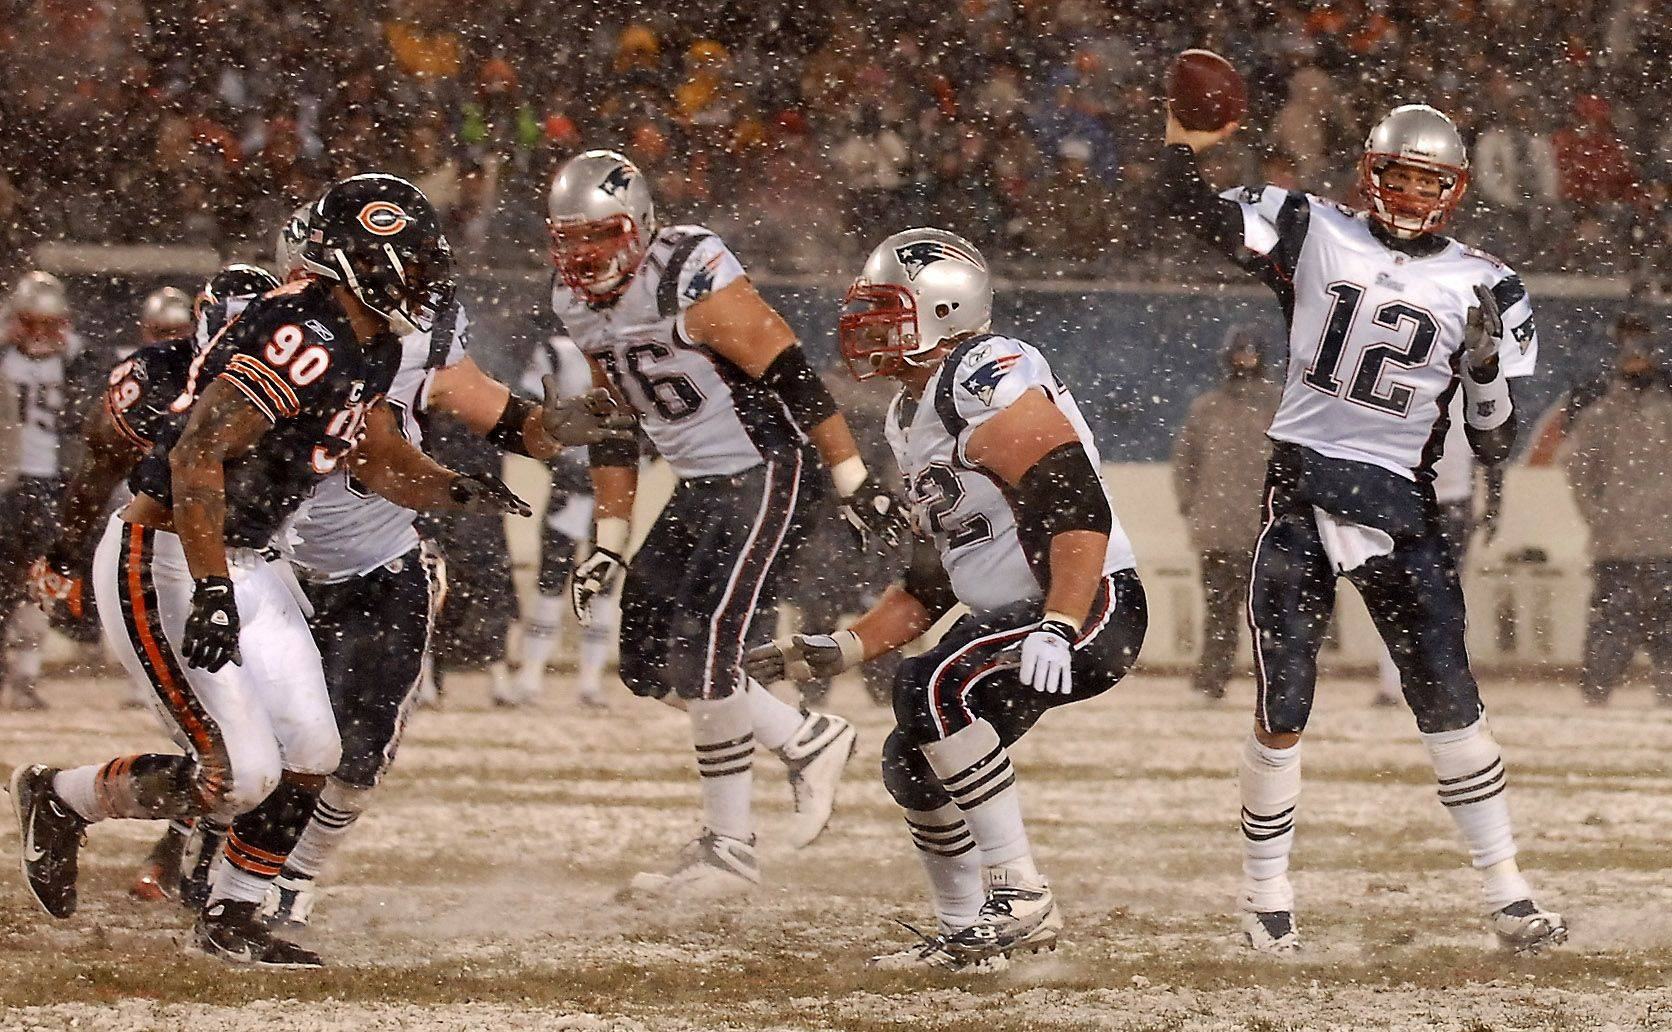 Brady heats up in the brutal cold